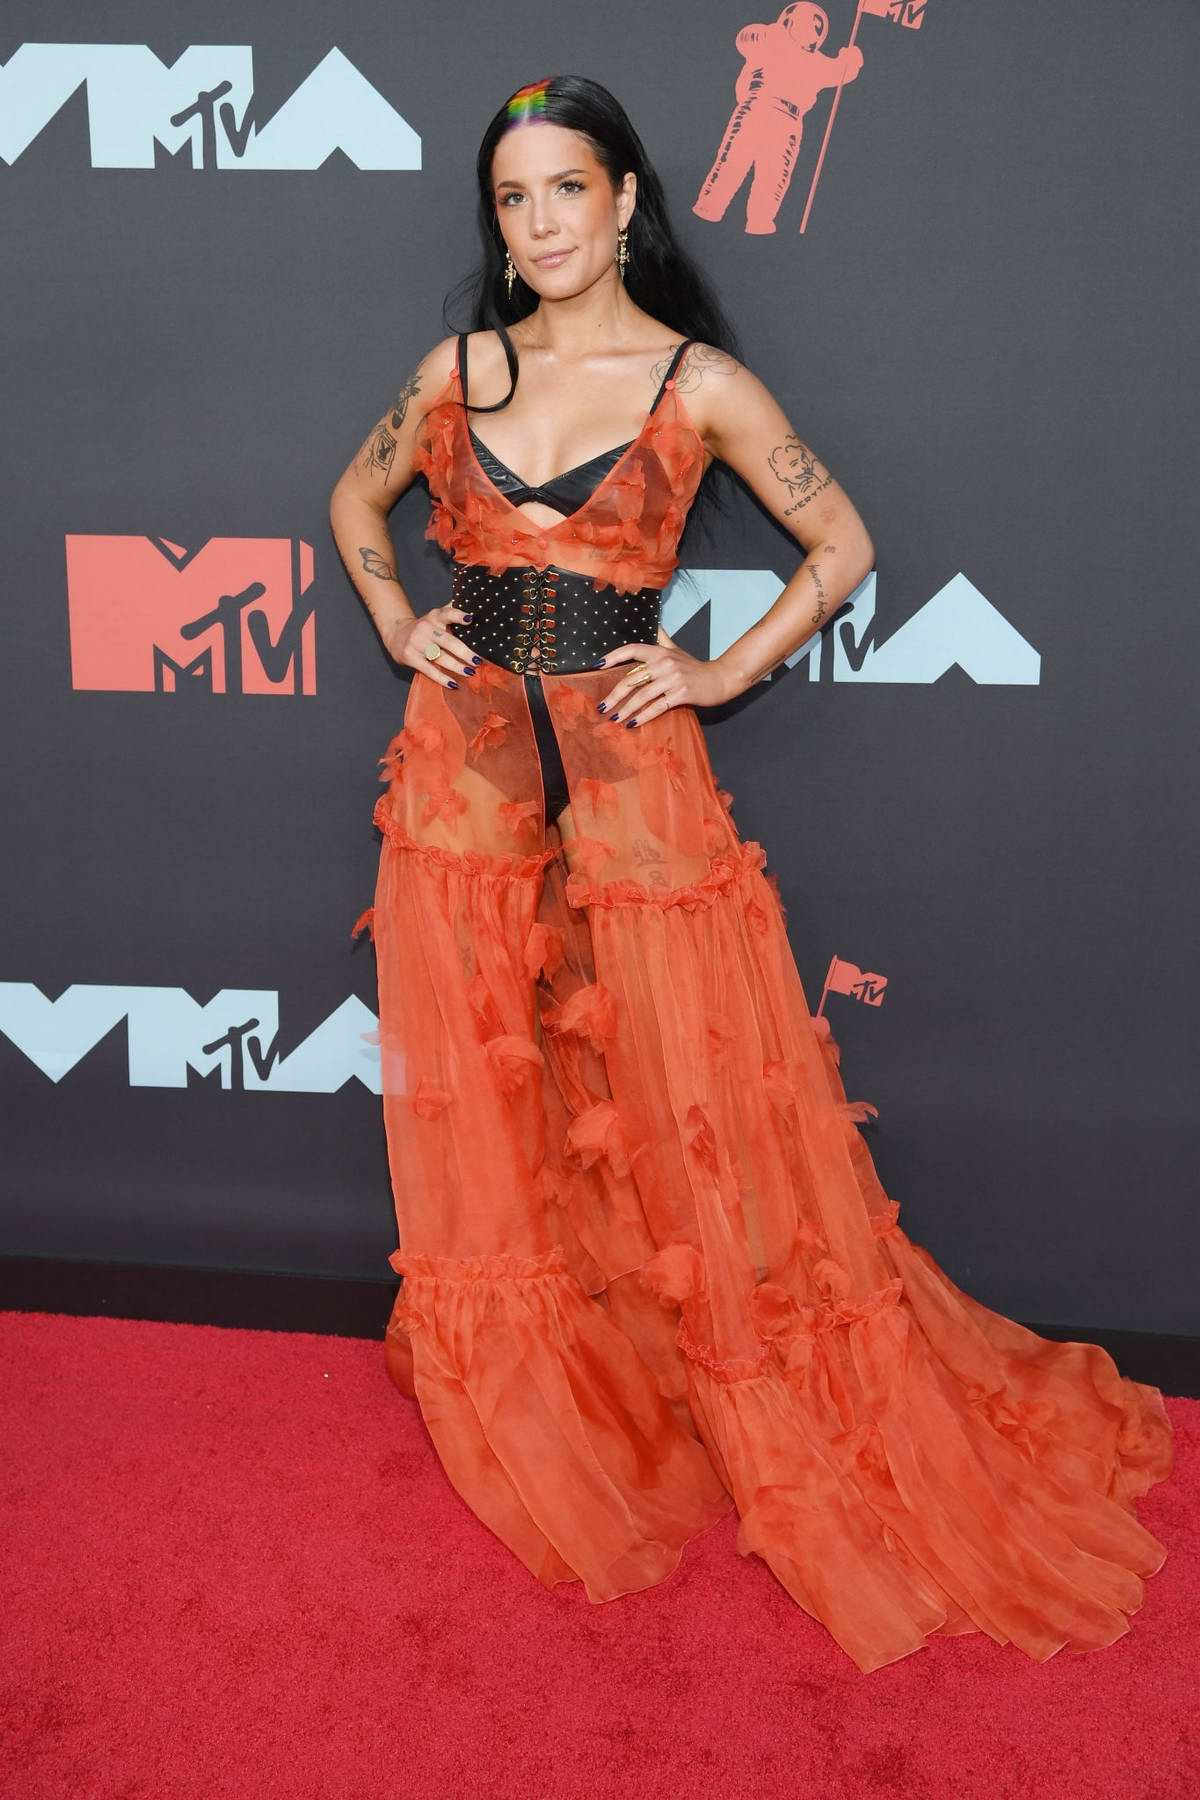 Halsey attends the 2019 MTV Video Music Awards at Prudential Center in Newark, New Jersey